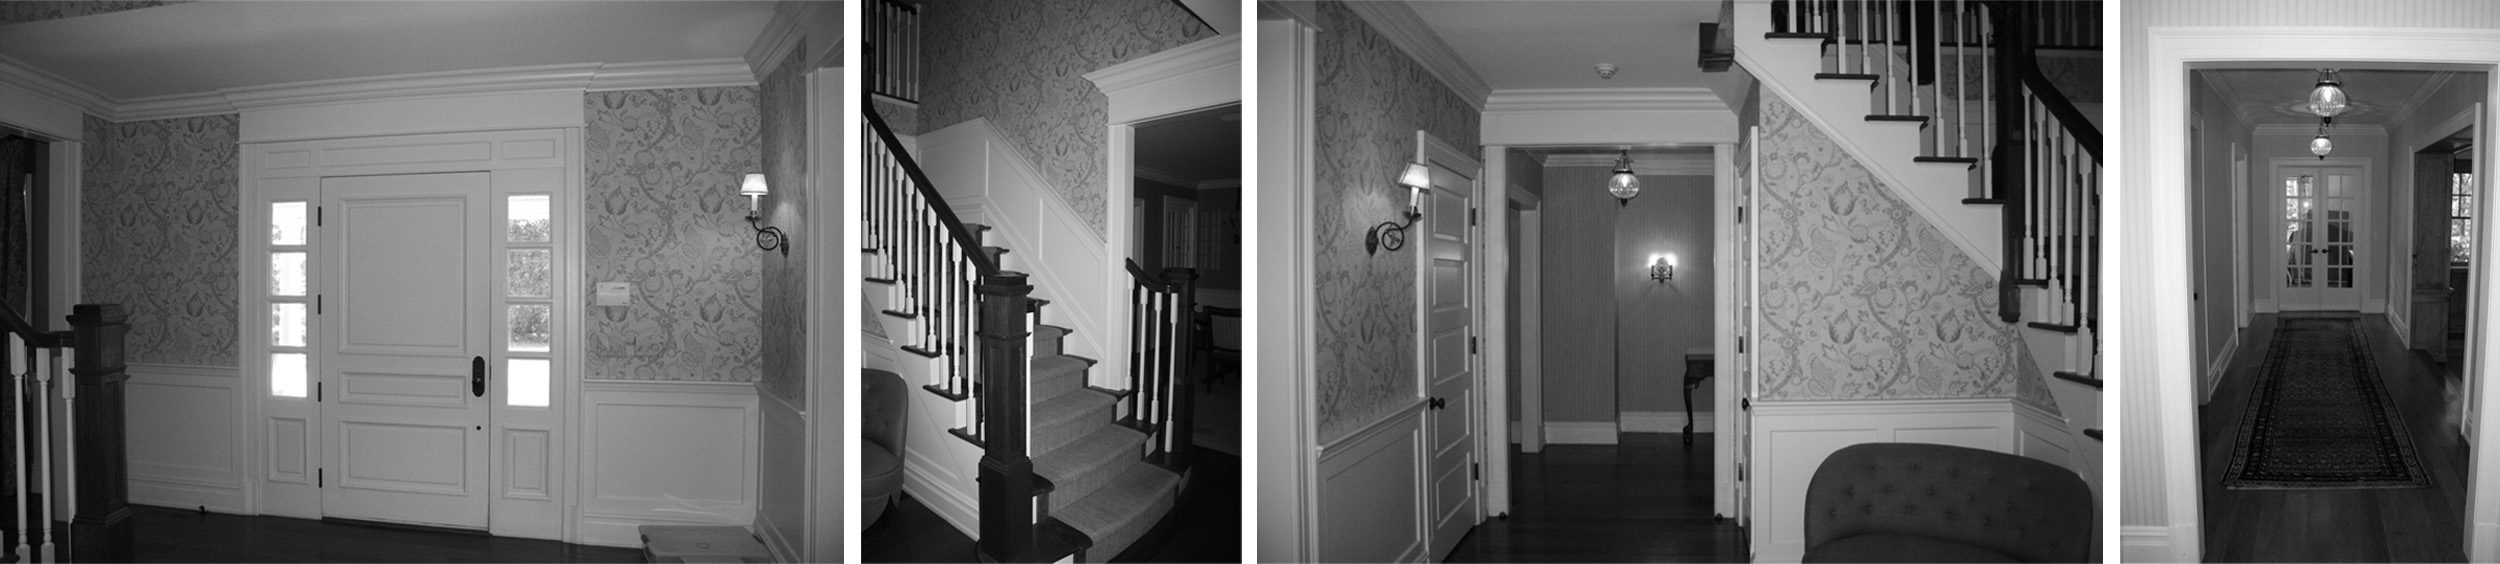 Before: front entry to stair hall; original stairway and newel posts (compare to post-renovation newel posts below); stair hall views prior to renovation